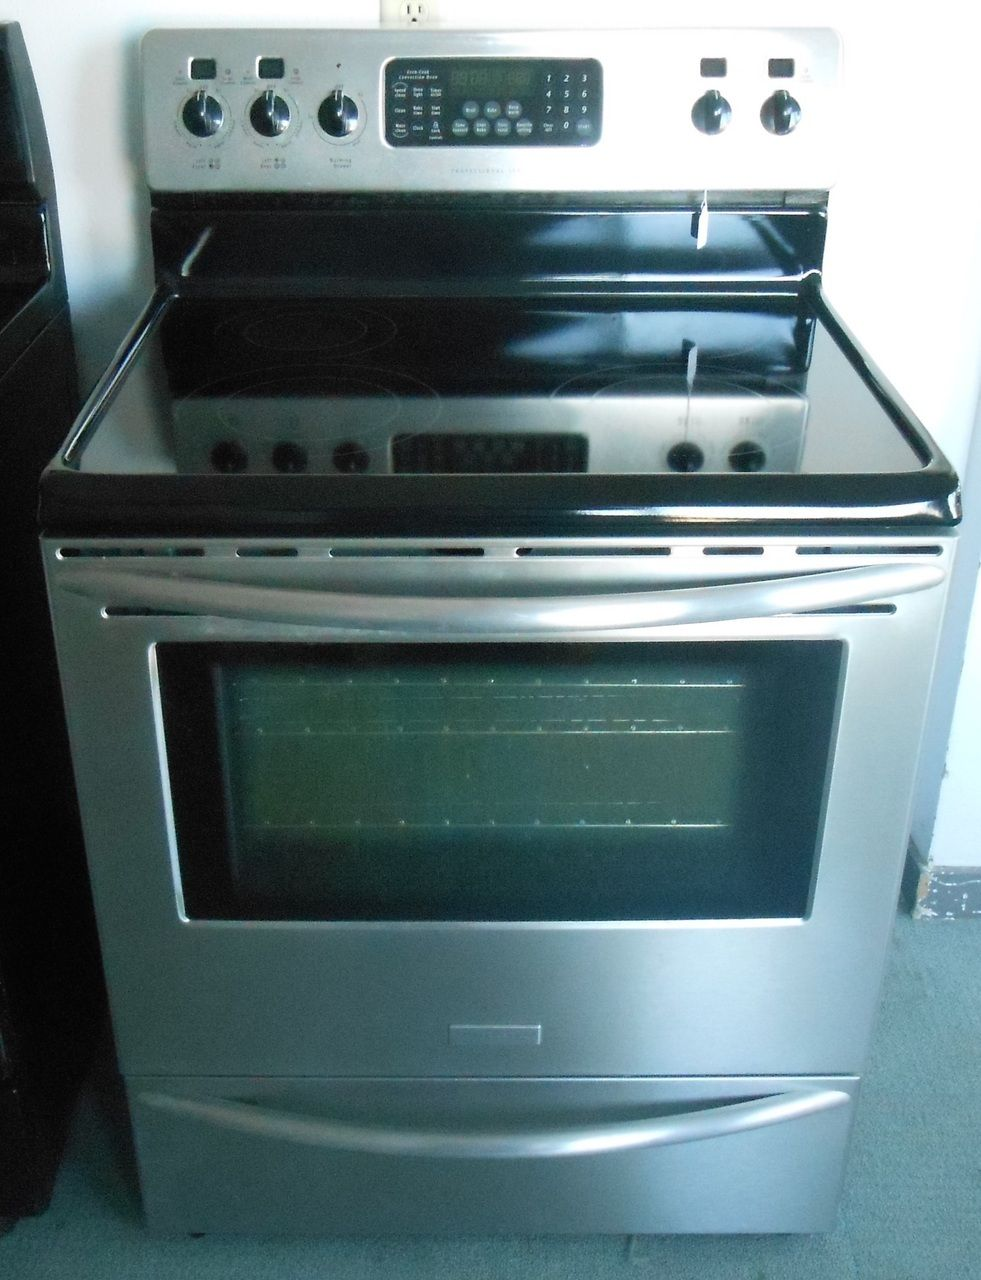 Appliance City - Frigidaire electric range Advanced Bake Plus ...